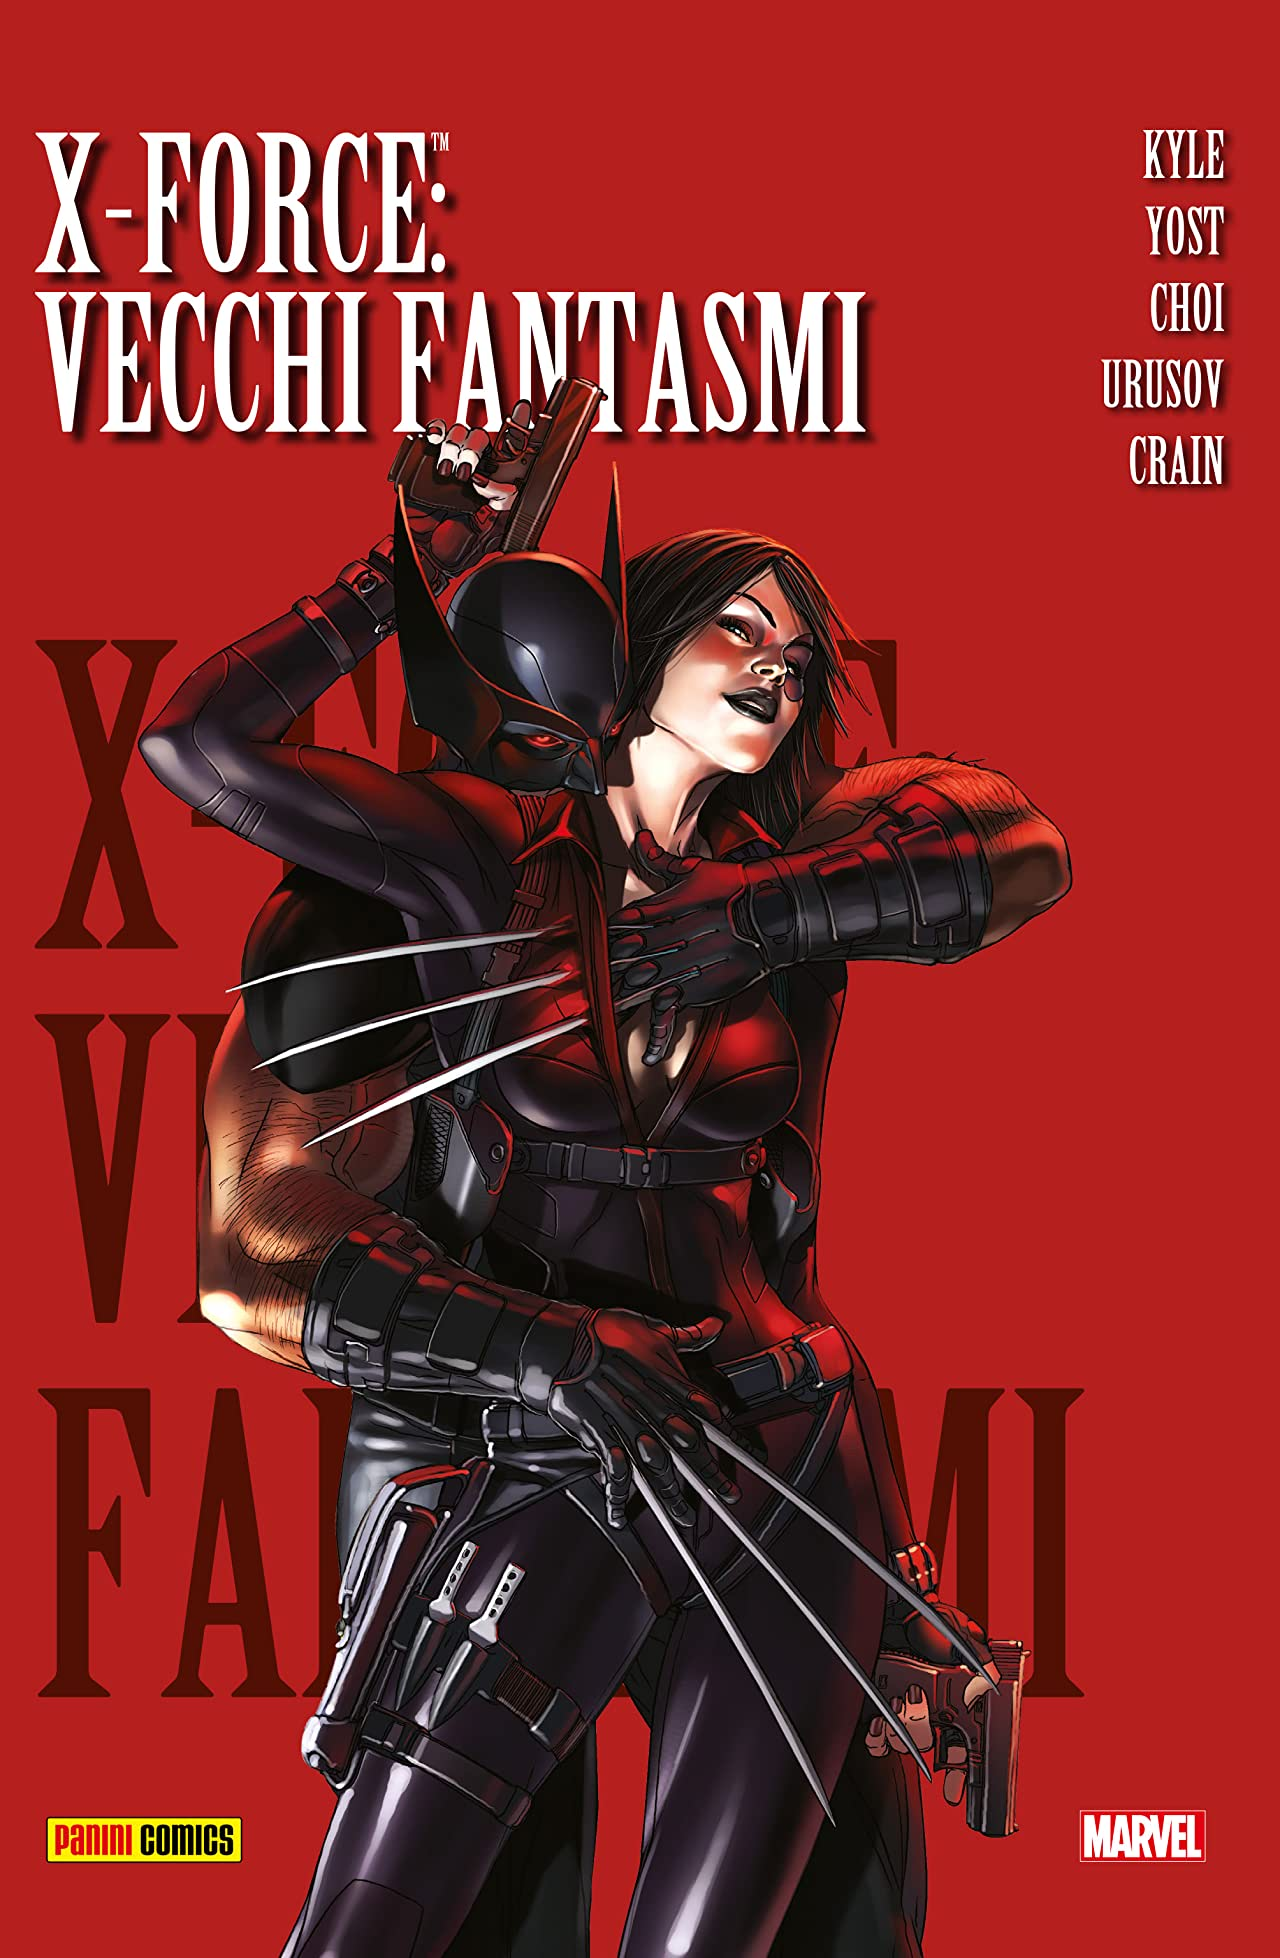 X-Force Vol. 2: Vecchi Fantasmi